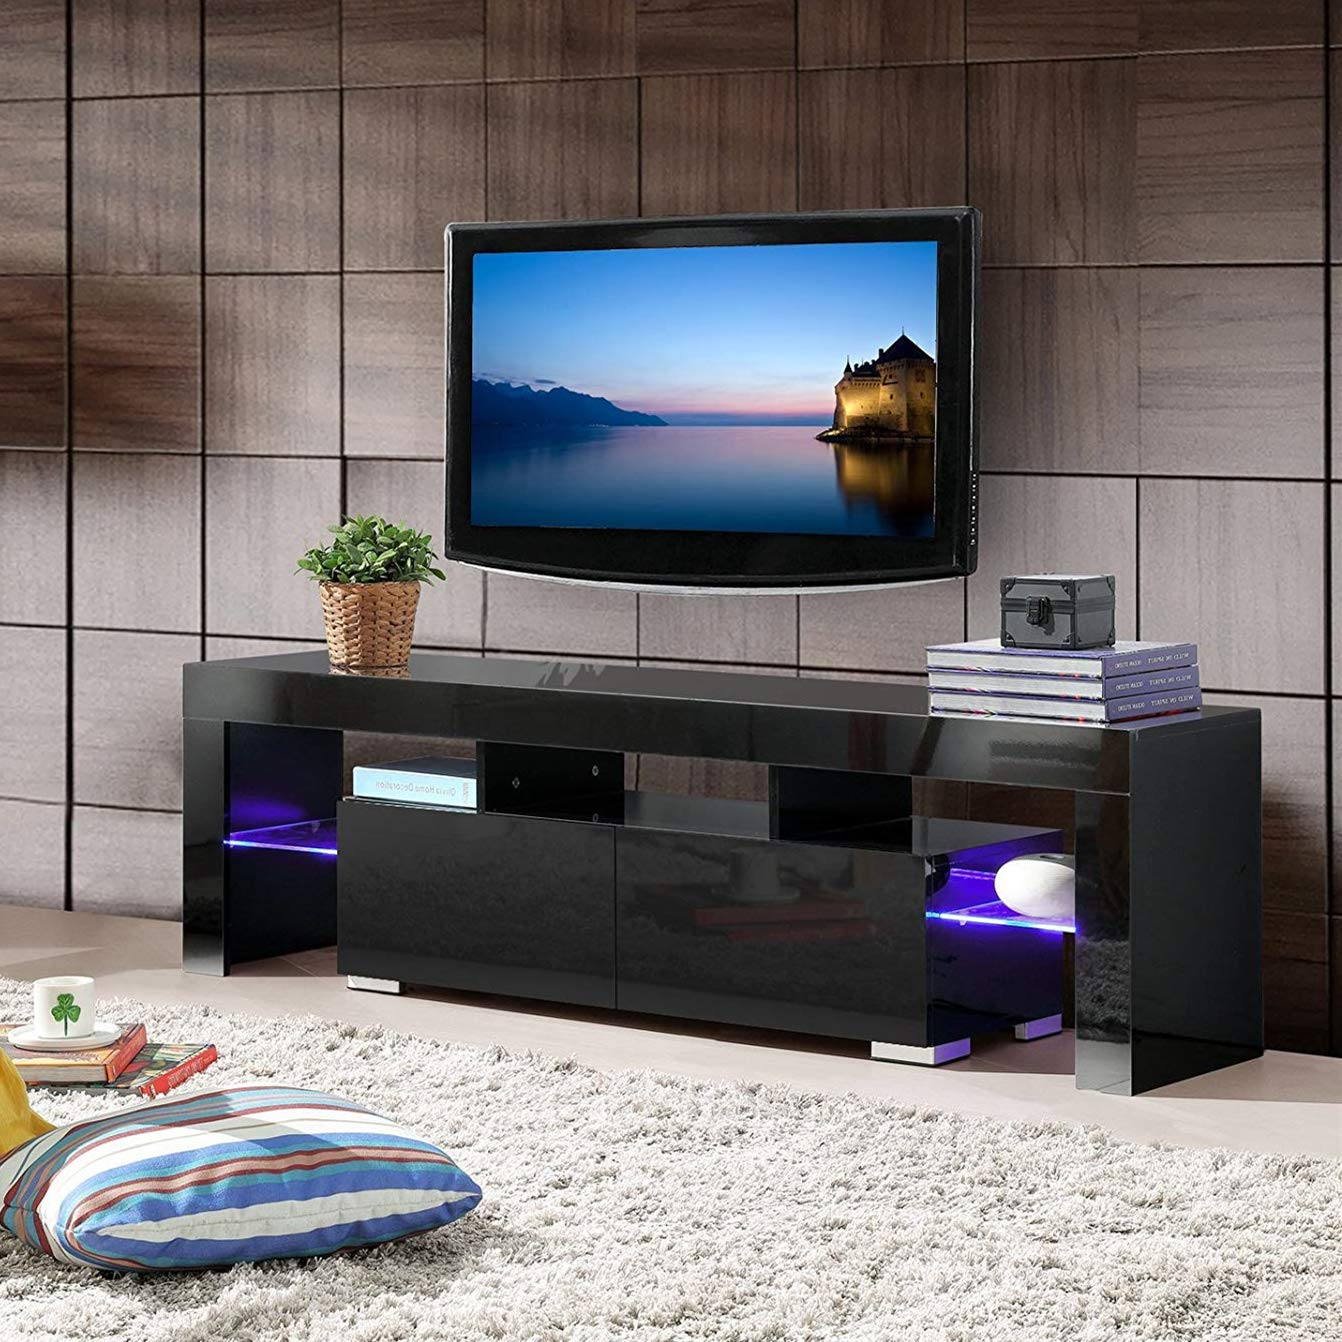 mecor Modern Black TV Stand with LED Lights, High Gloss TV Stand for 65 Inch TV LED TV Stand with Storage and 2 Drawers Living Room Furniture(Black) by mecor